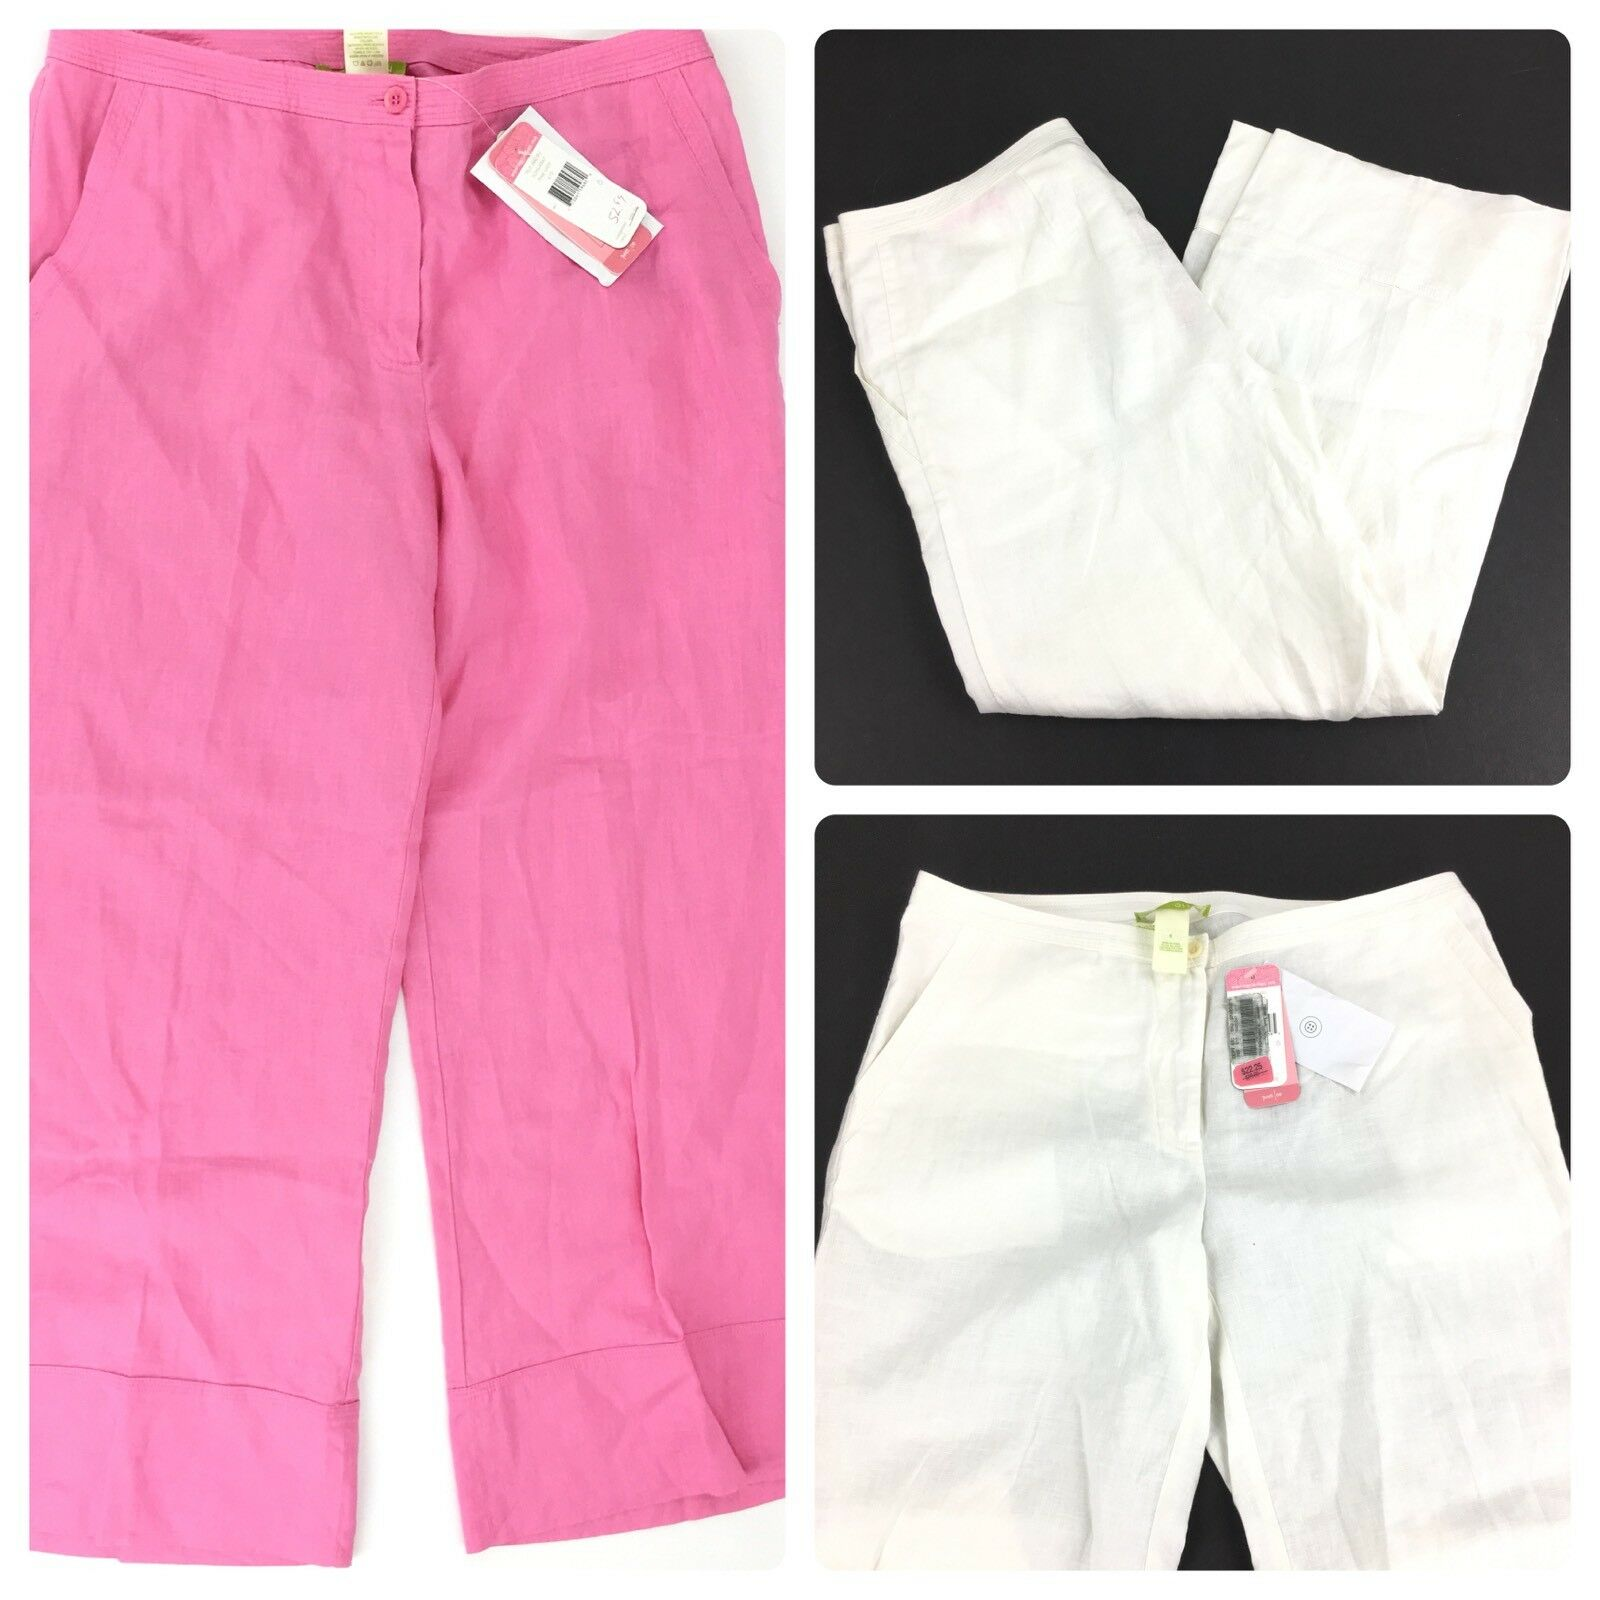 Sigrid Olsen Relaxed Crop Pants 100% Linen Lot of 2 Pink White Poet 09 Sz 6 NWT